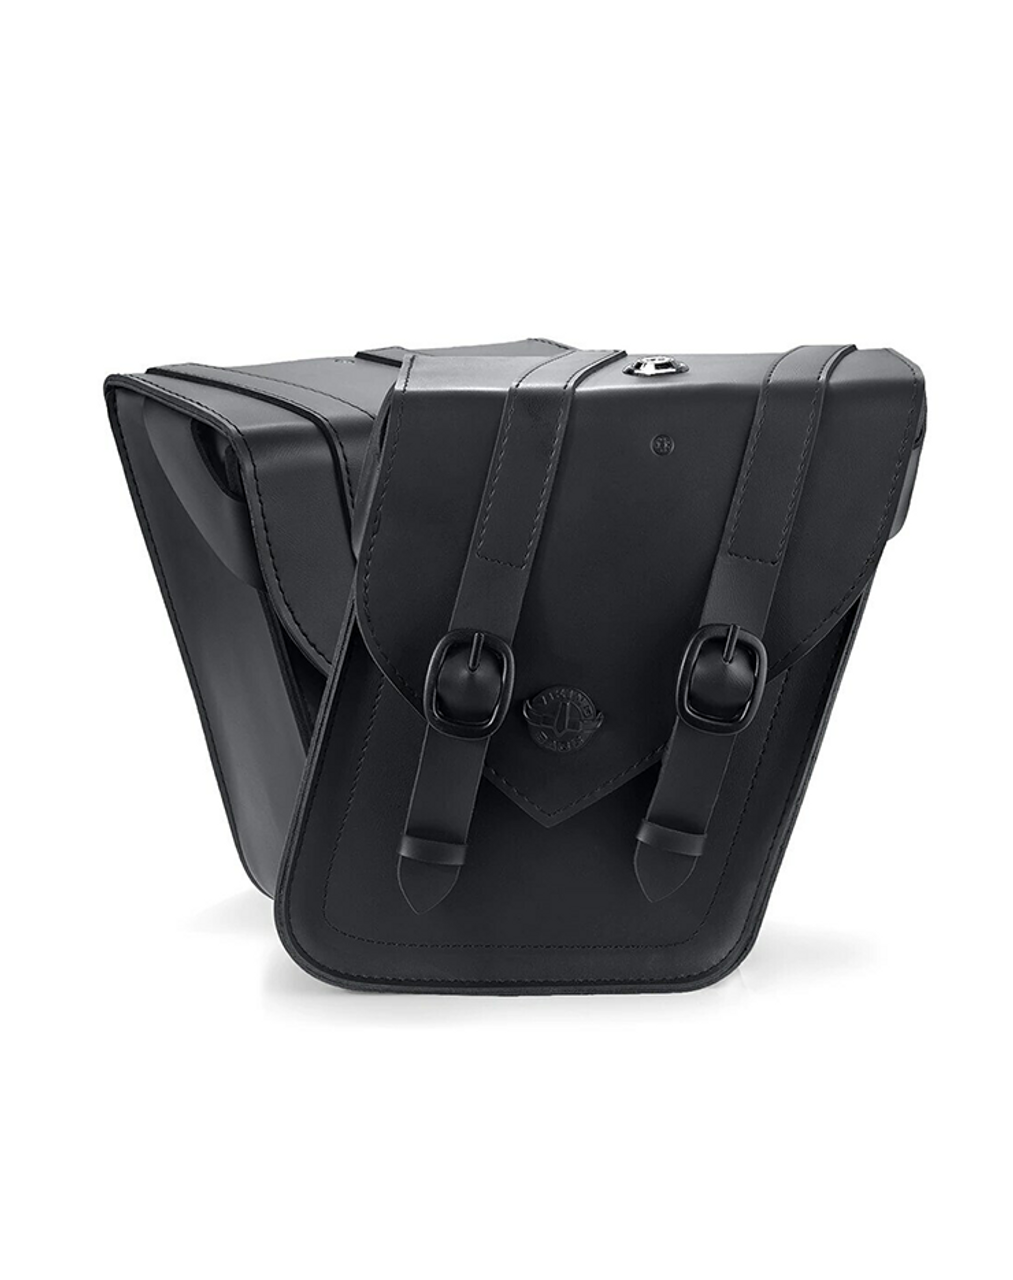 VikingBags Dark Age Compact Strapped Leather Motorcycle Saddlebags for Harley Sportster SuperLow 1200T Both Bags View